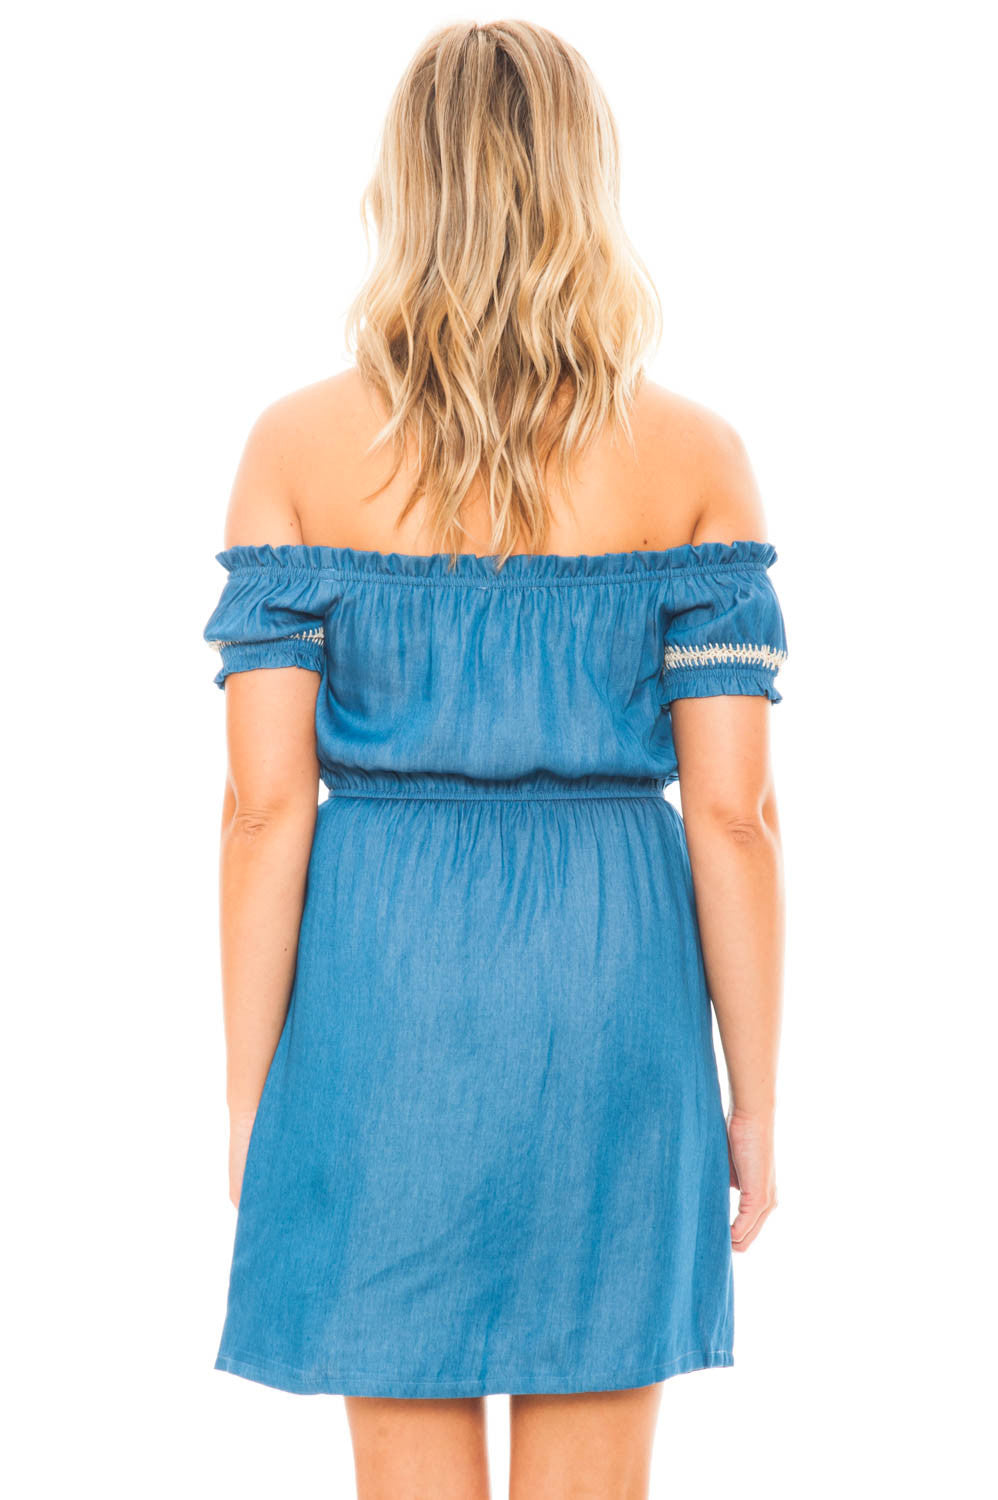 Dress - Embroidered Off Shoulder Denim Dress by Lush